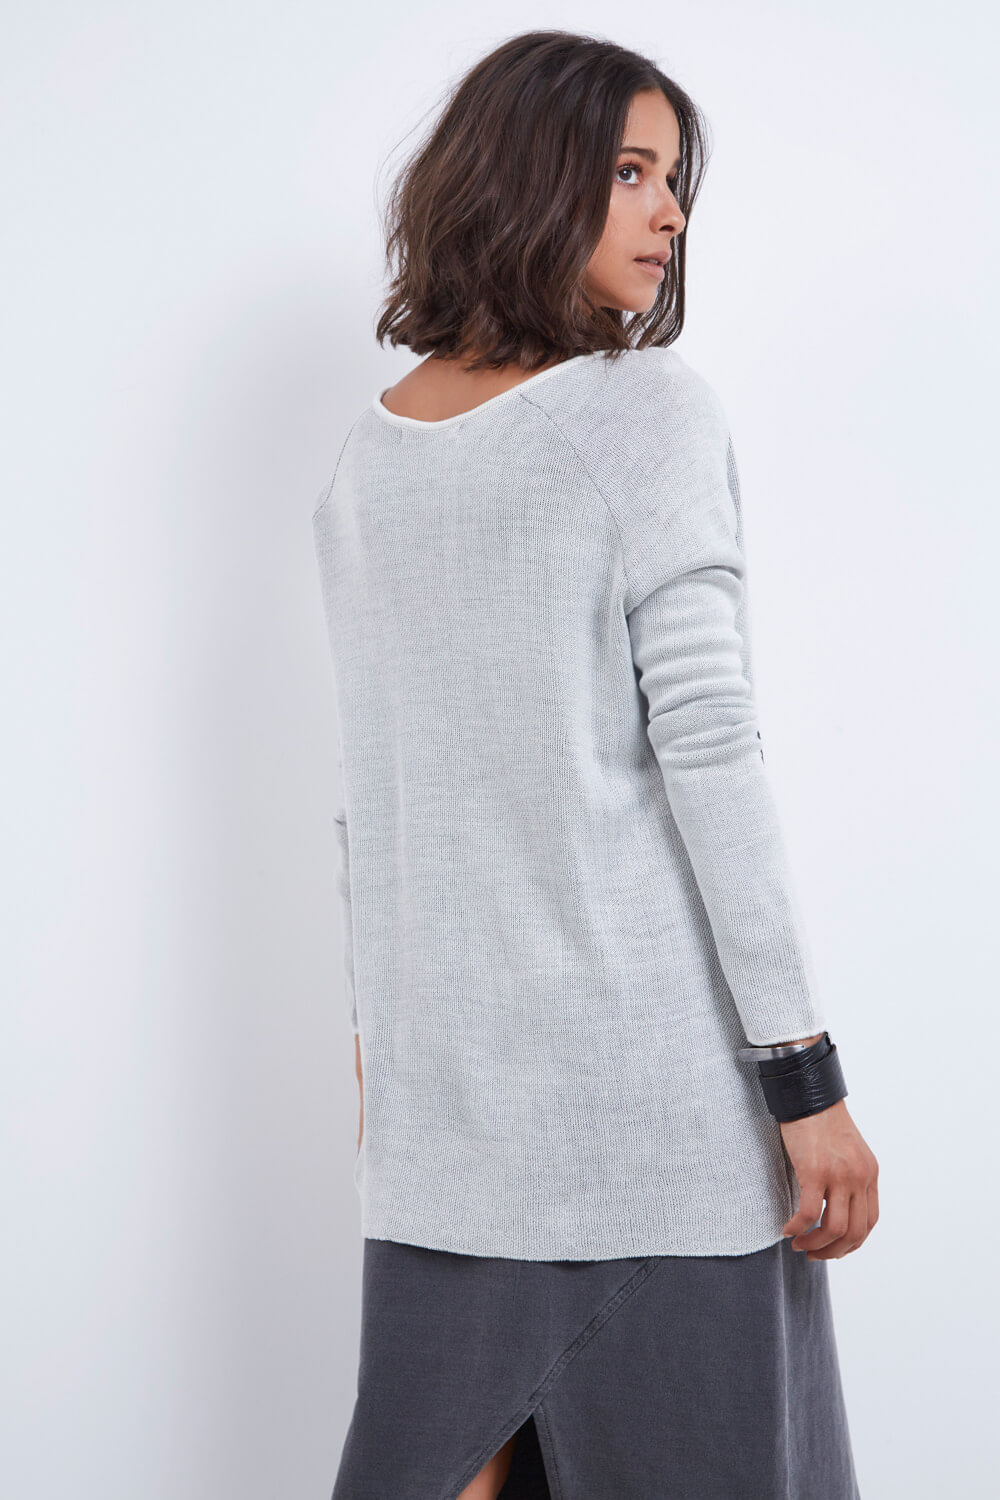 BLUSA-TRICOT-THE-QUEENS-01025084-SACADA-